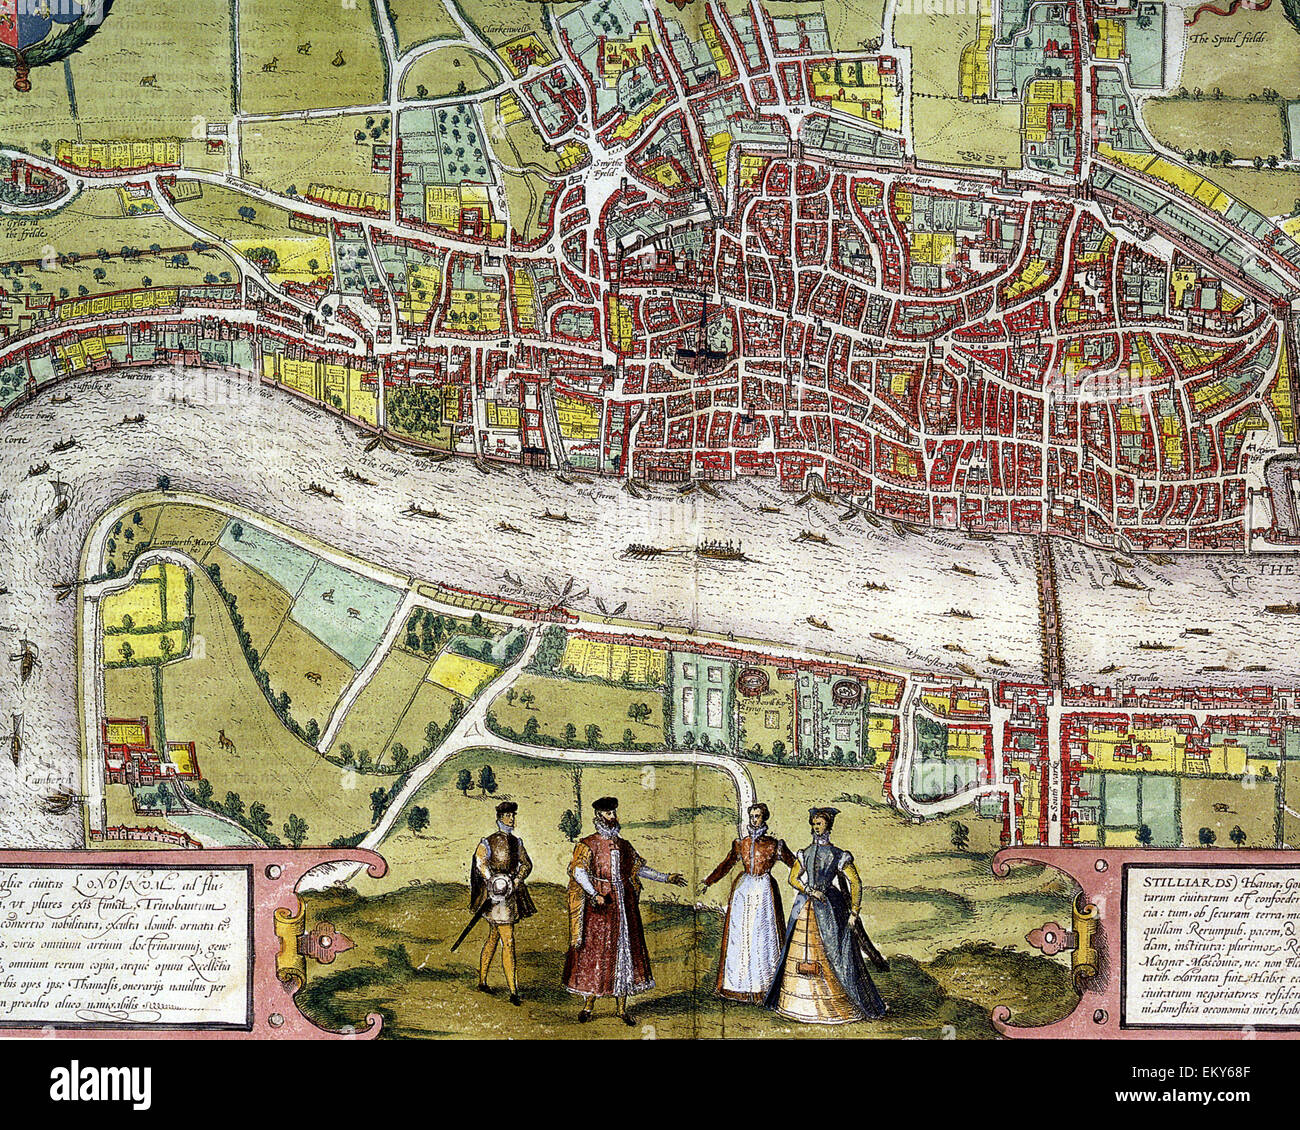 Map Of London Centre.Elizabethan London Centre Section Of Braun And Hogenberg S Map Stock